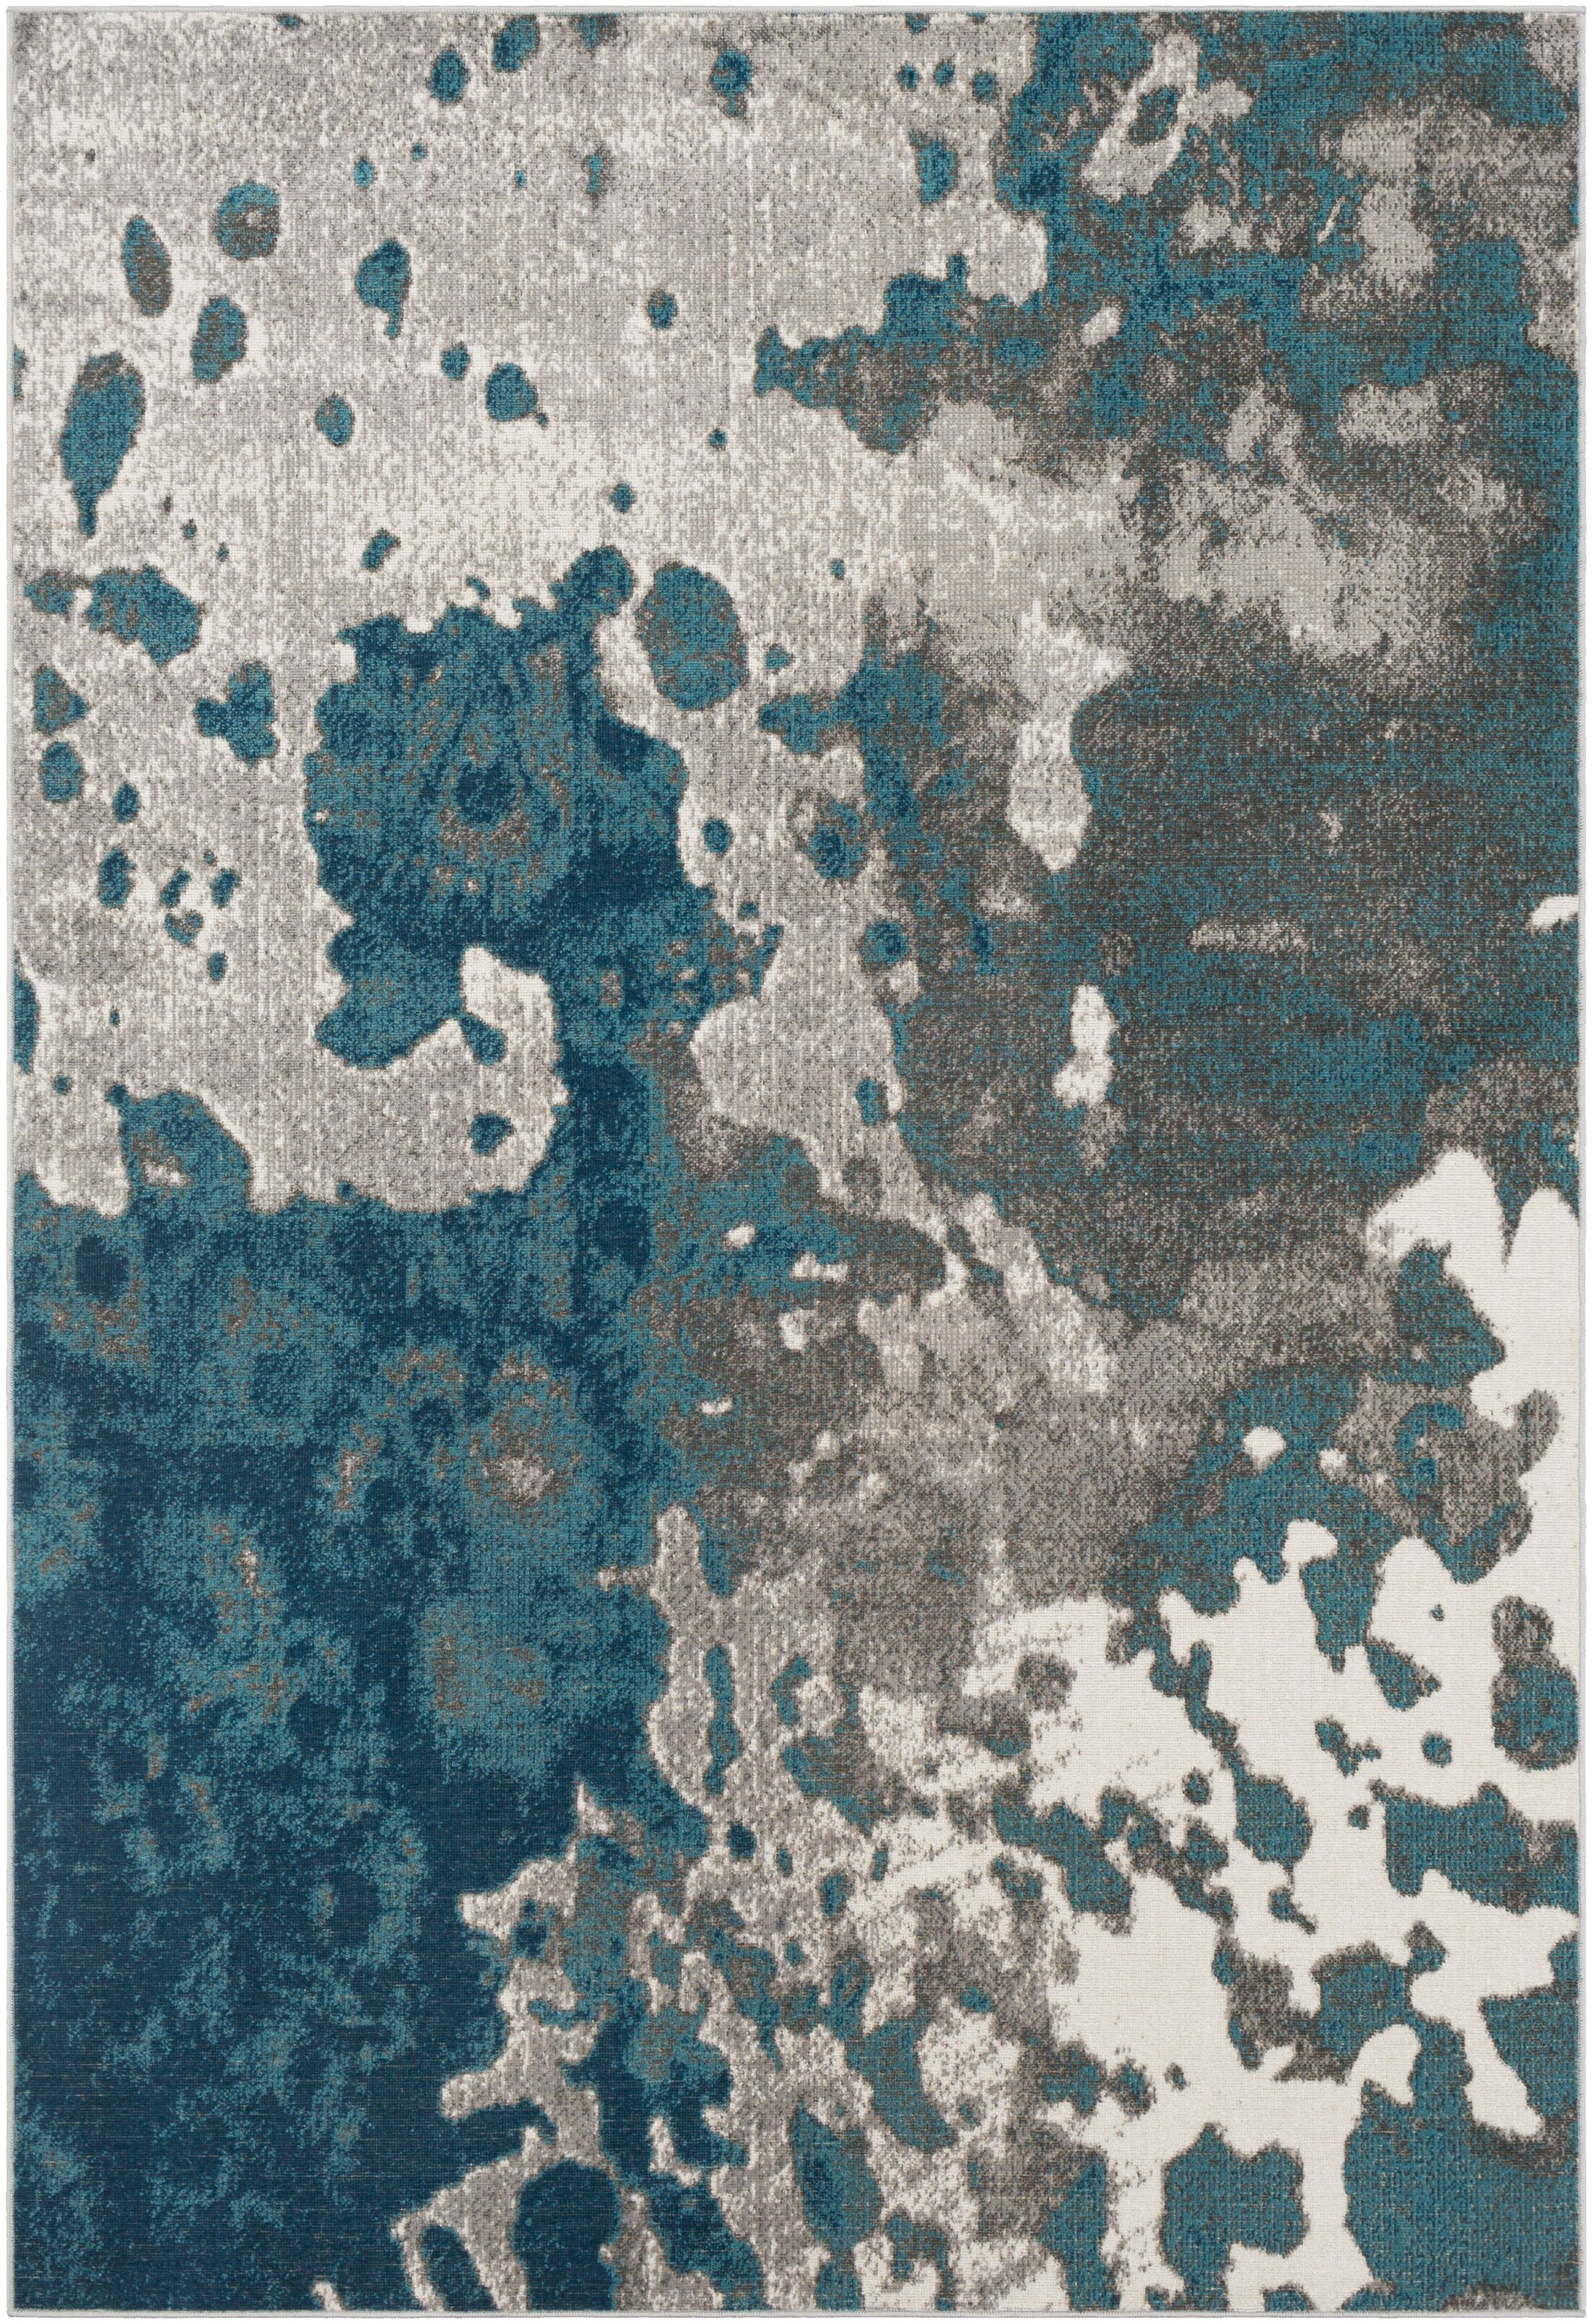 Ramm Distressed Abstract Teal/Taupe Area Rug Rug Size: Rectangle 7'10